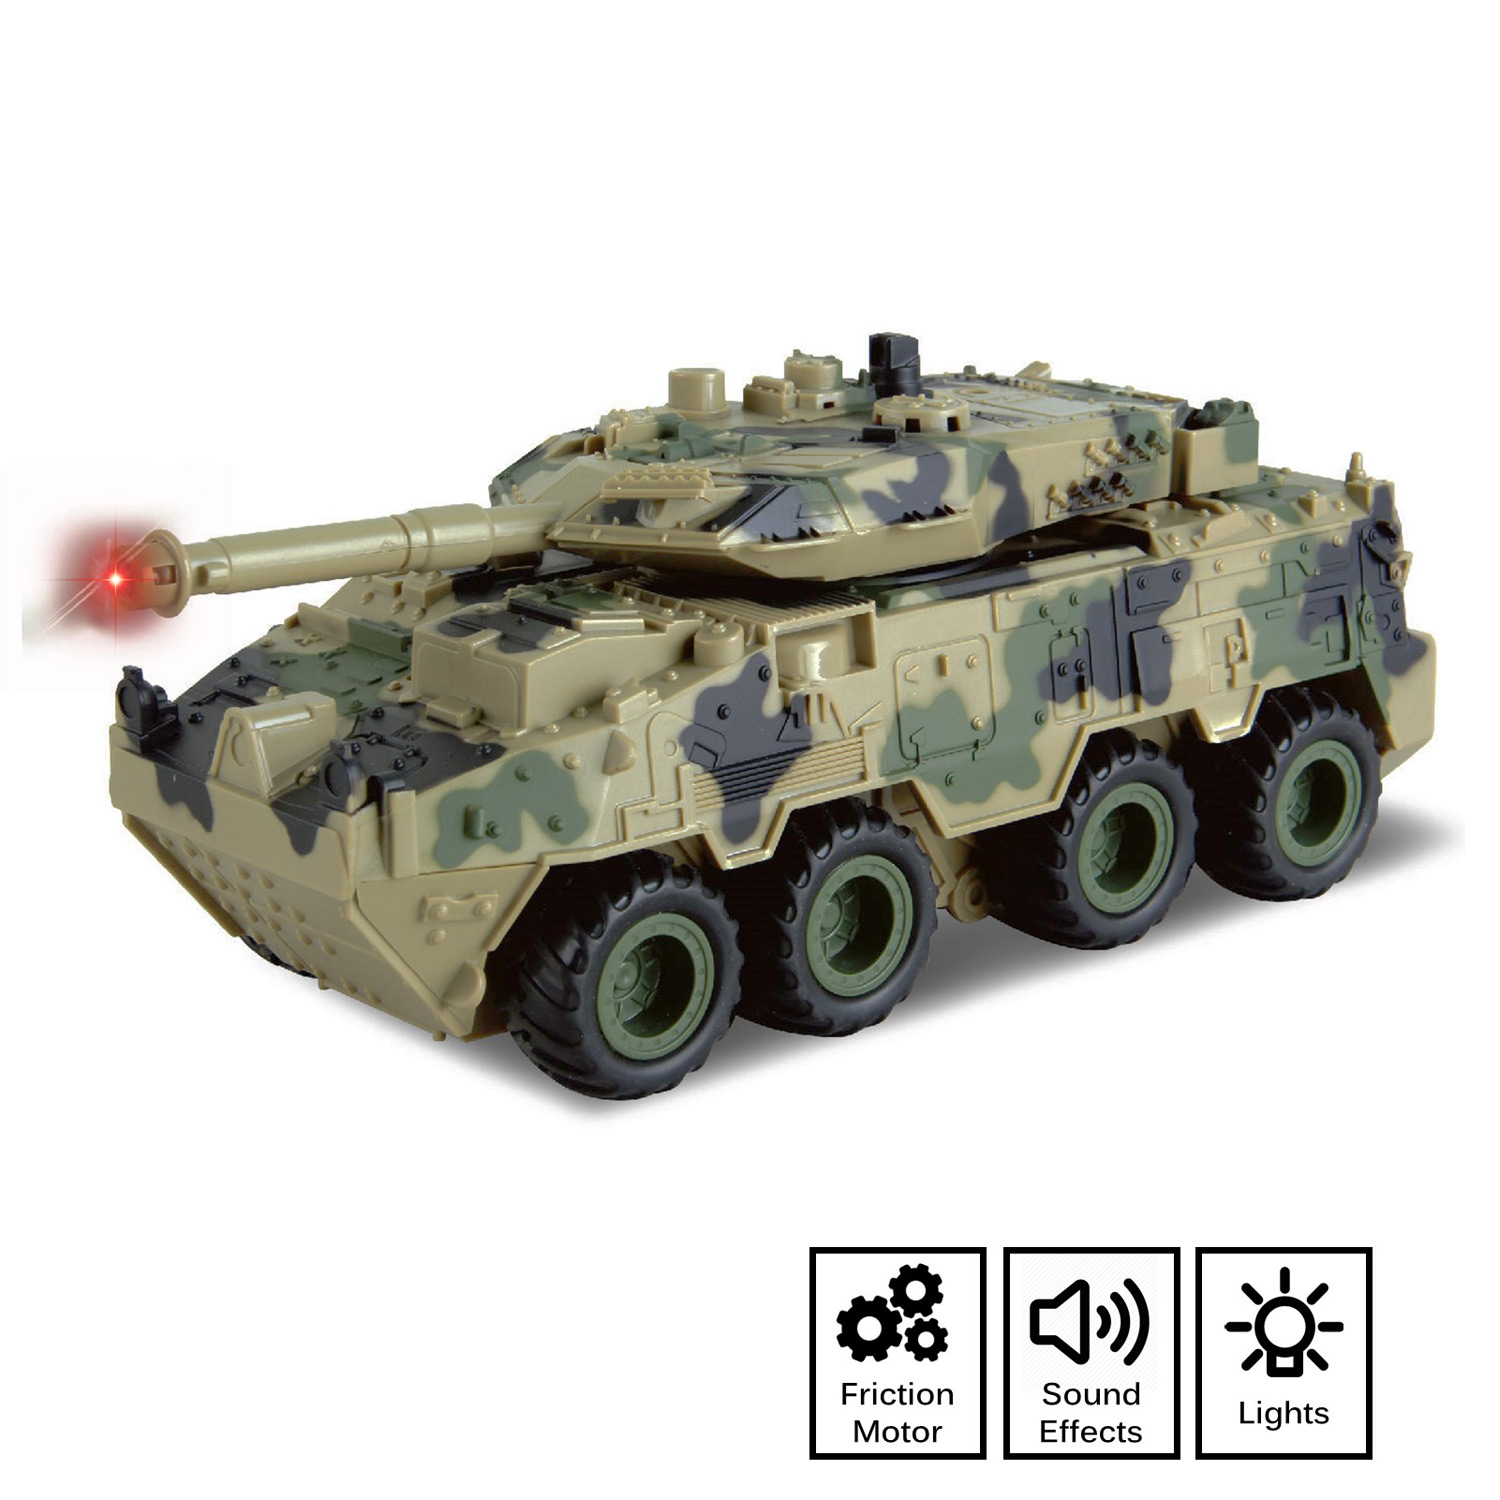 Camouflage Battle Tank Toy Friction Powered Push And Go With Lights Sounds Nice Quality Details Pivoting Top Action Military Play Imagination Army Car Armored Vehicle Perfect Kids Gift